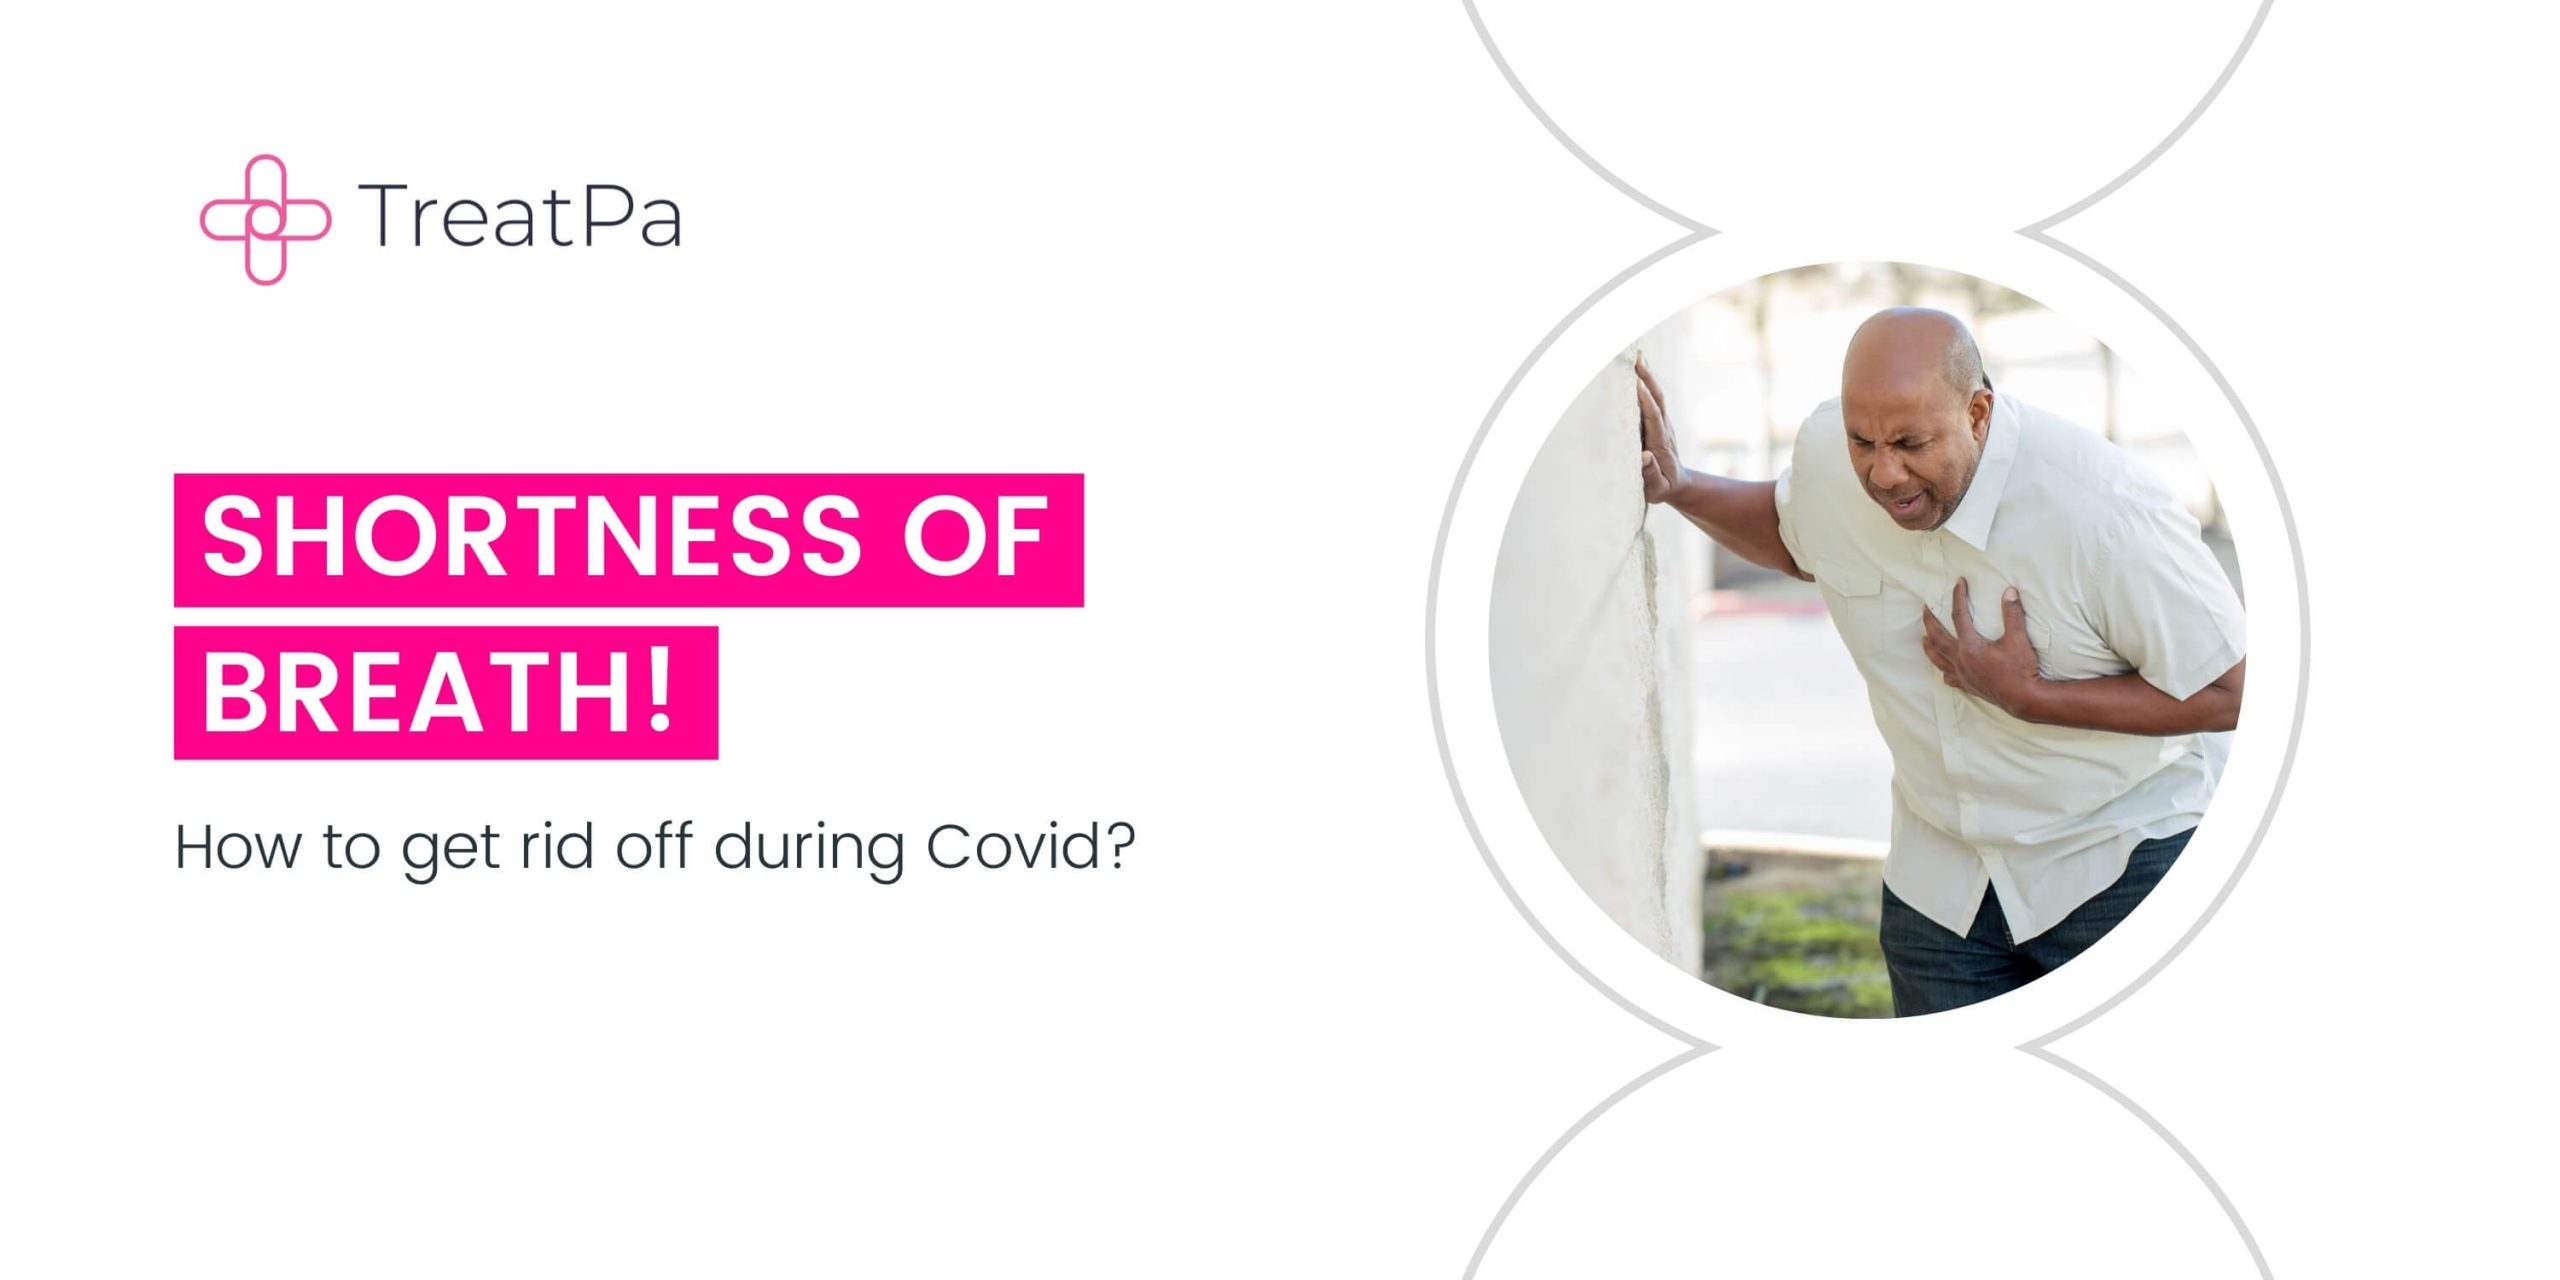 Breathing problems due to Covid-19